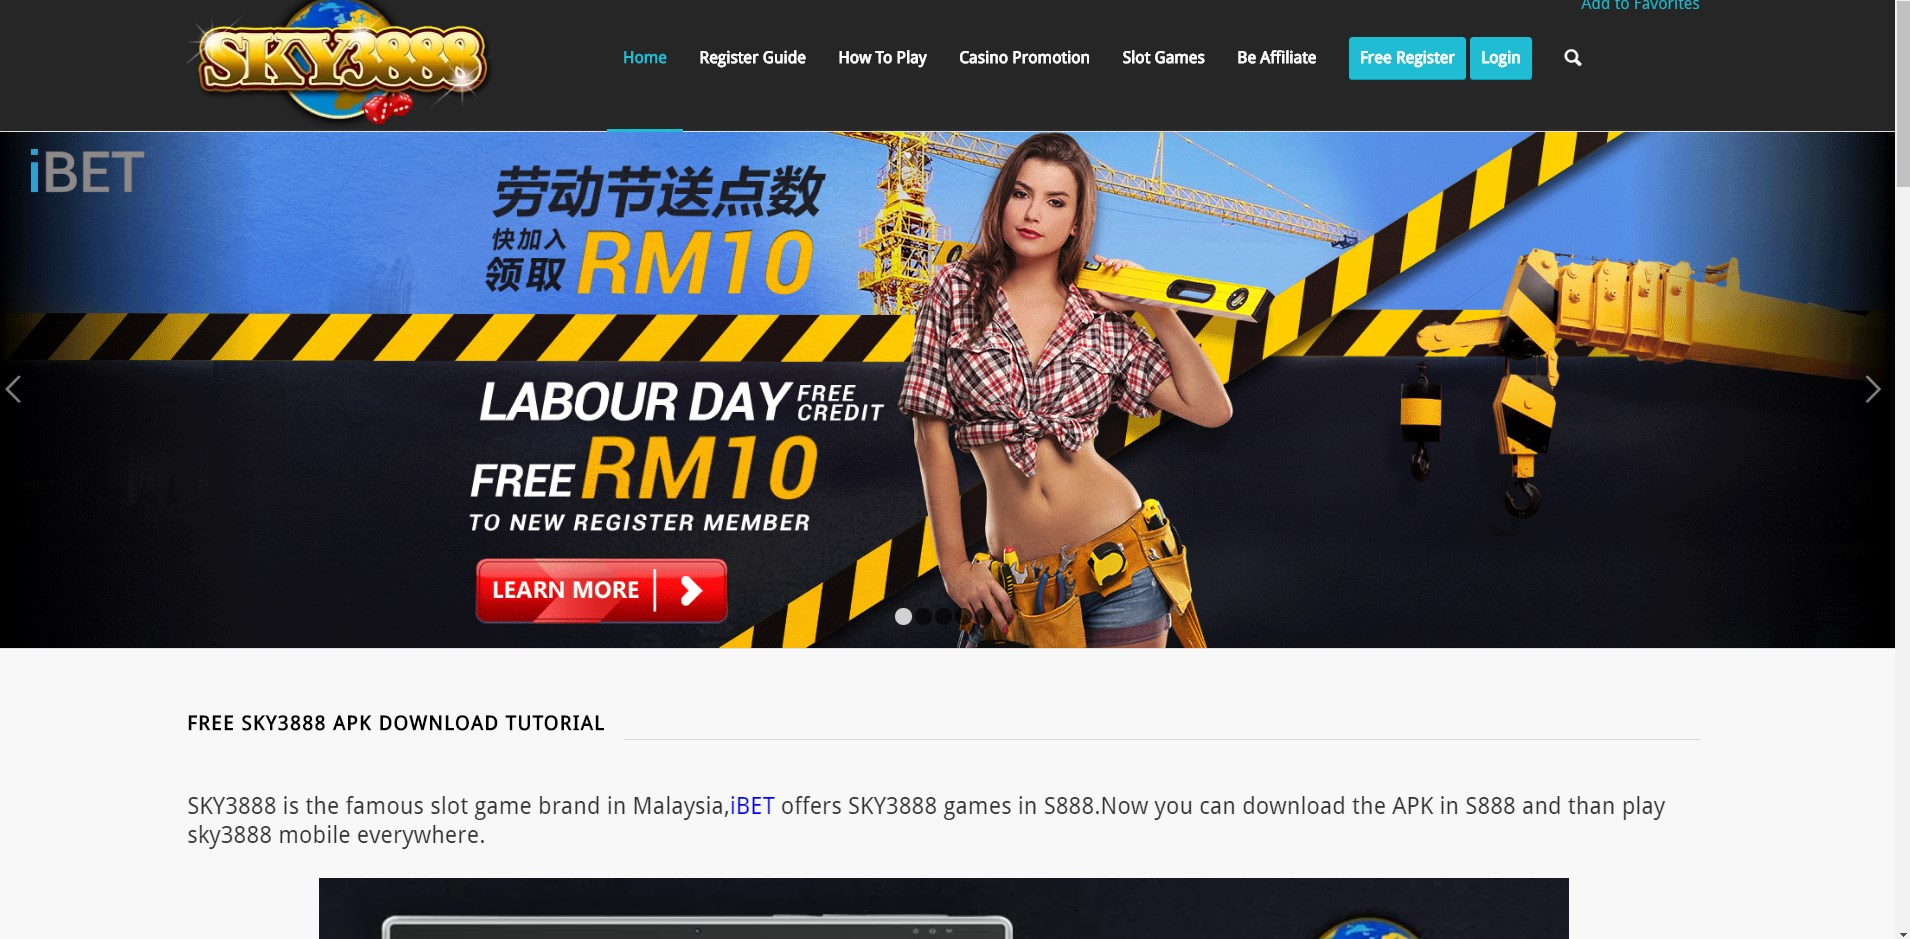 Teaching you Get iBET Free Labour Day RM10